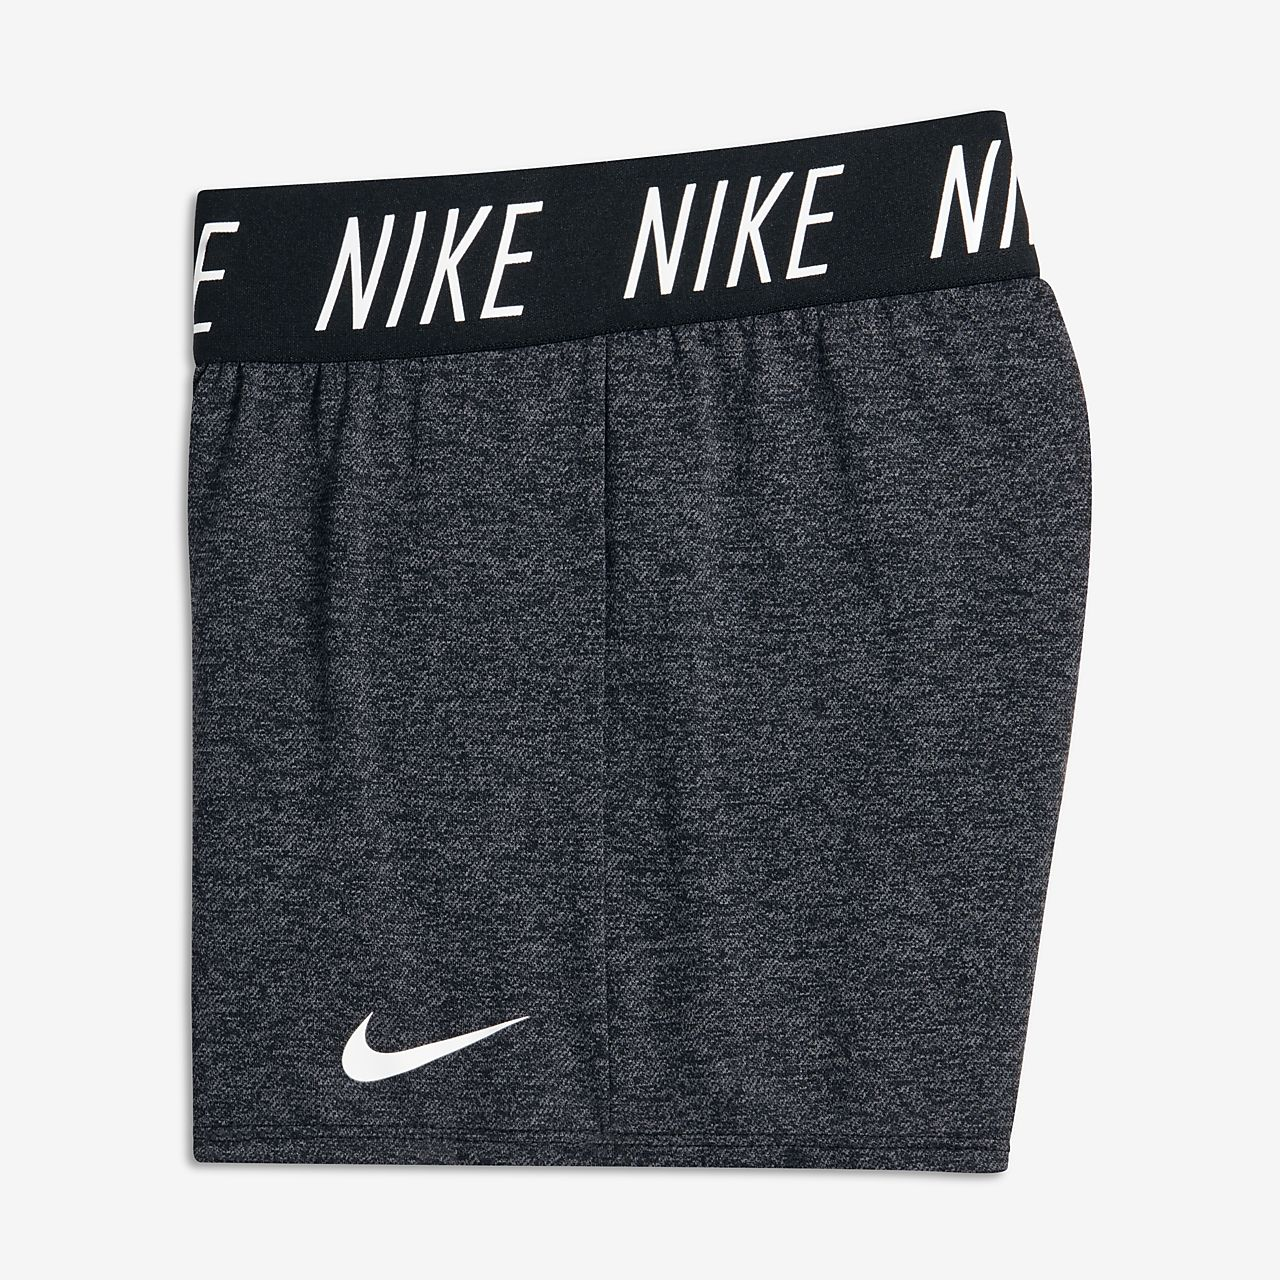 835801cd7 Nike Dri-FIT Trophy Big Kids' (Girls') Training Shorts. Nike.com